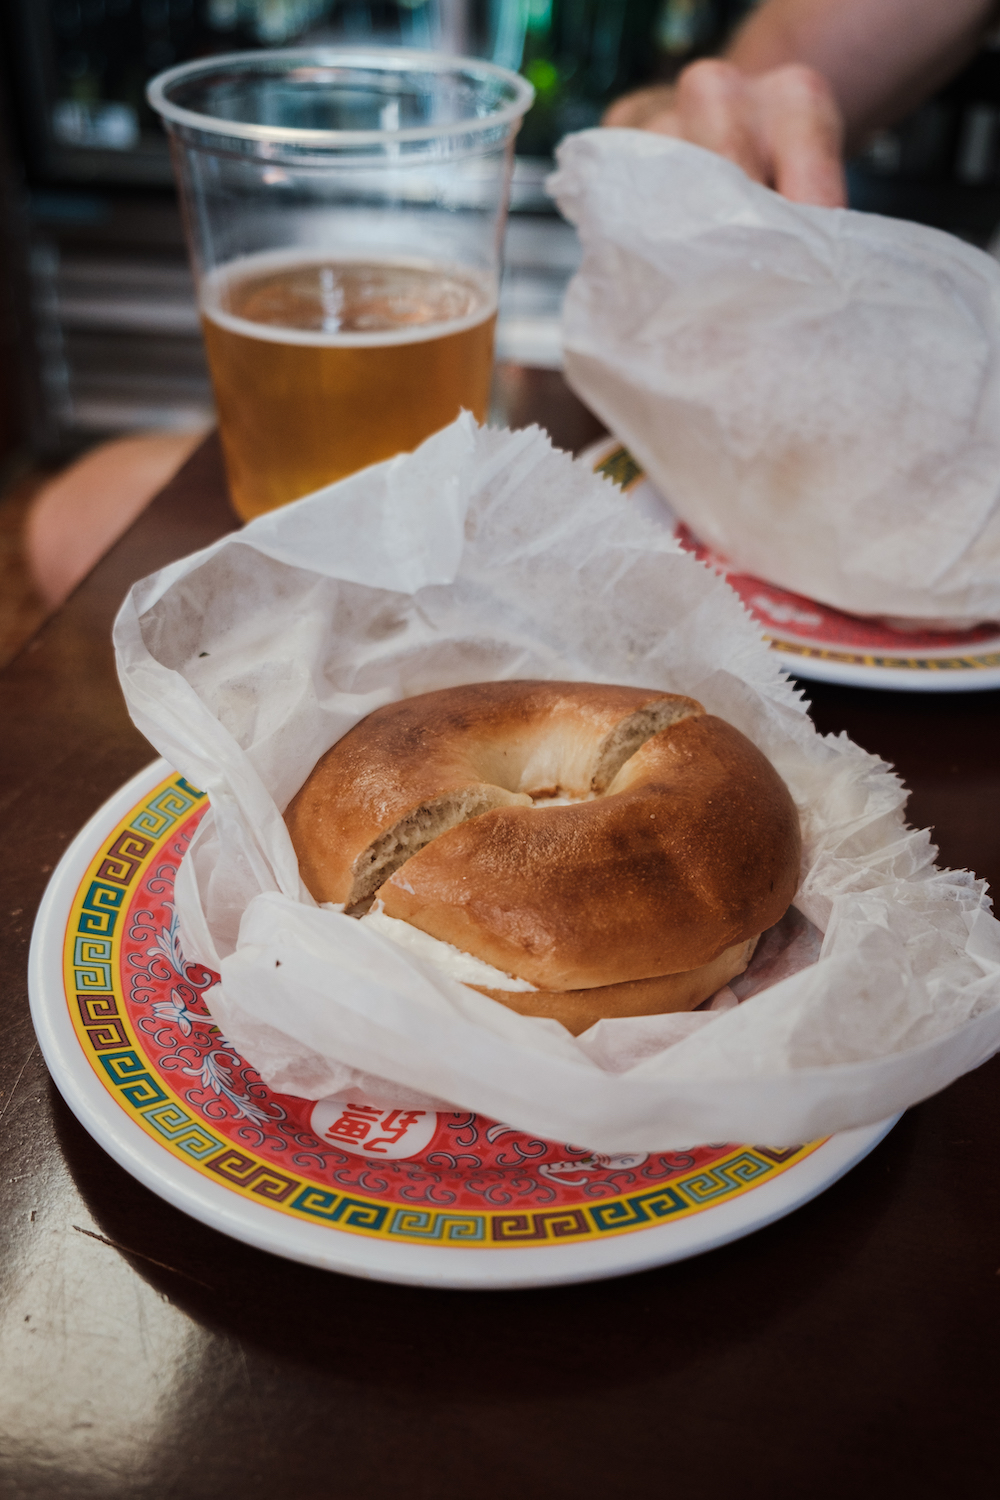 Beers and bagels in Bronx, New York Travel and Street Photography by Ben Holbrook from DriftwoodJournals.com-9401